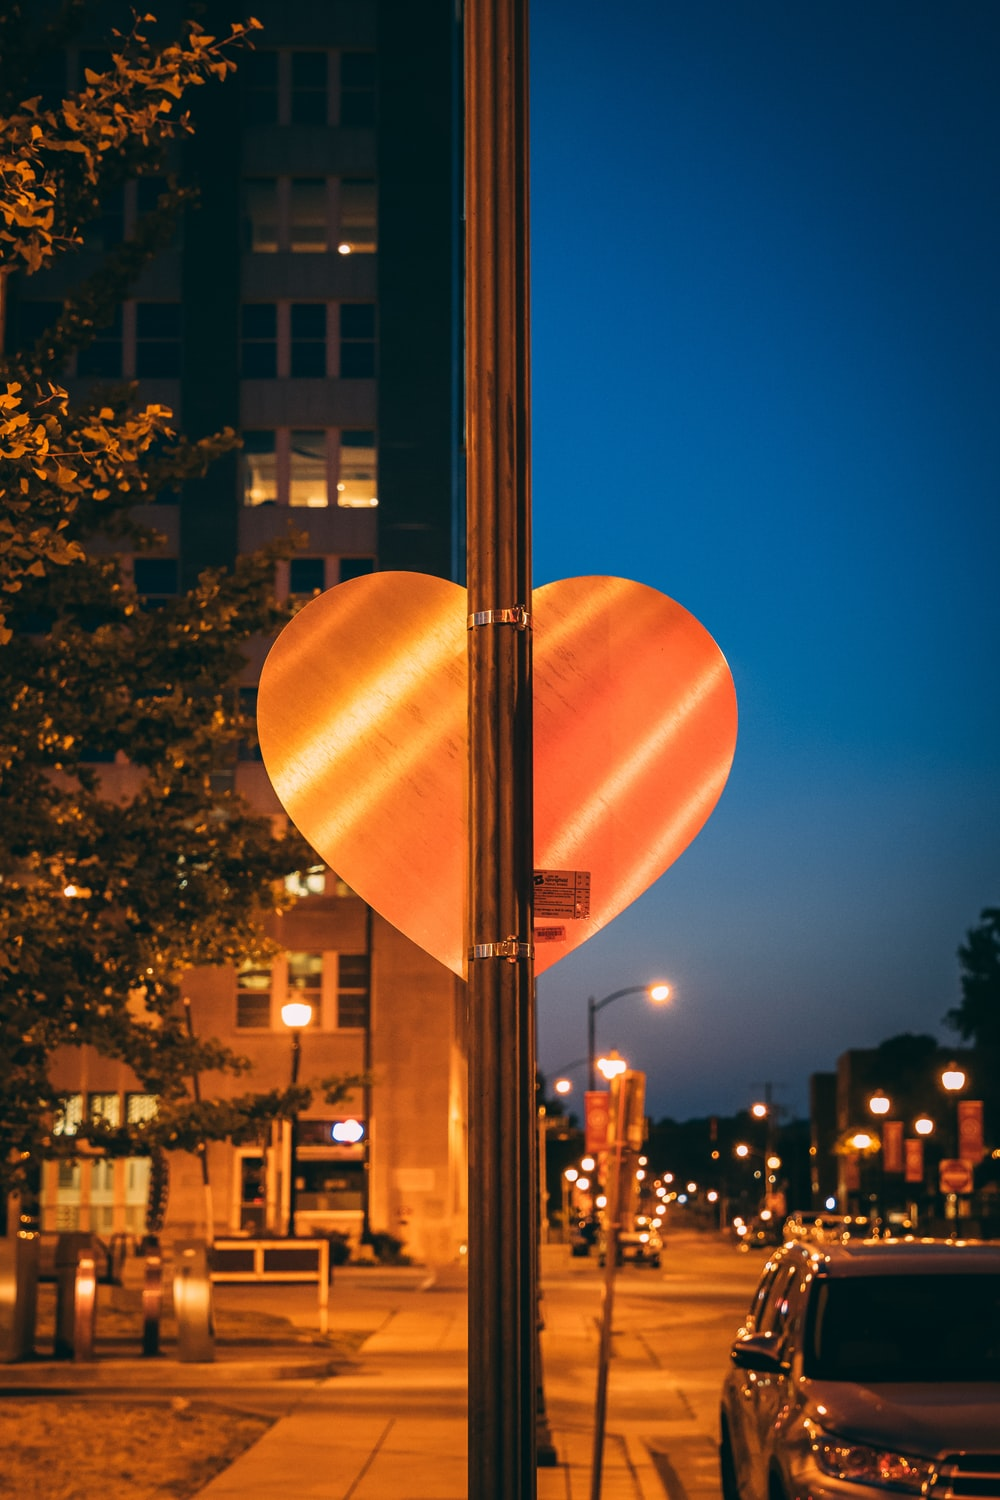 heart-shaped signage on lamp post